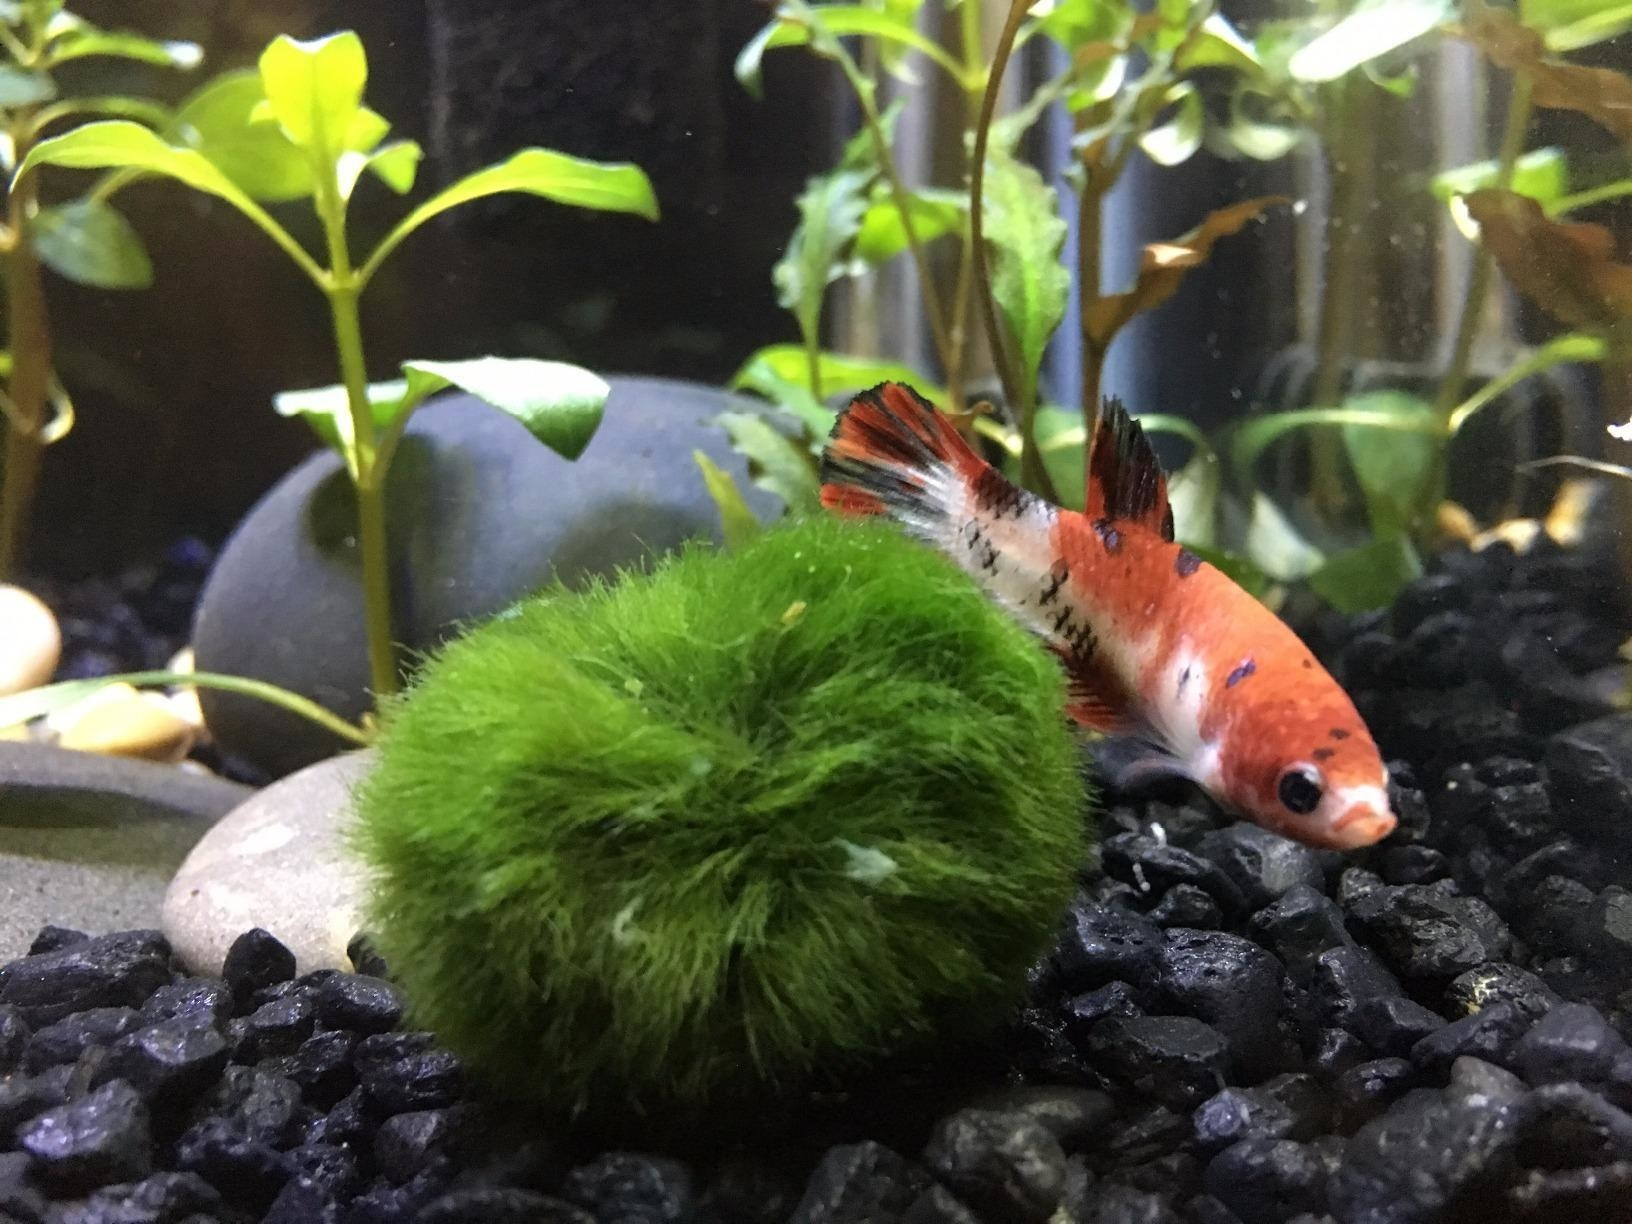 Reviewer's fish swims around one of the moss balls inside a fish tank